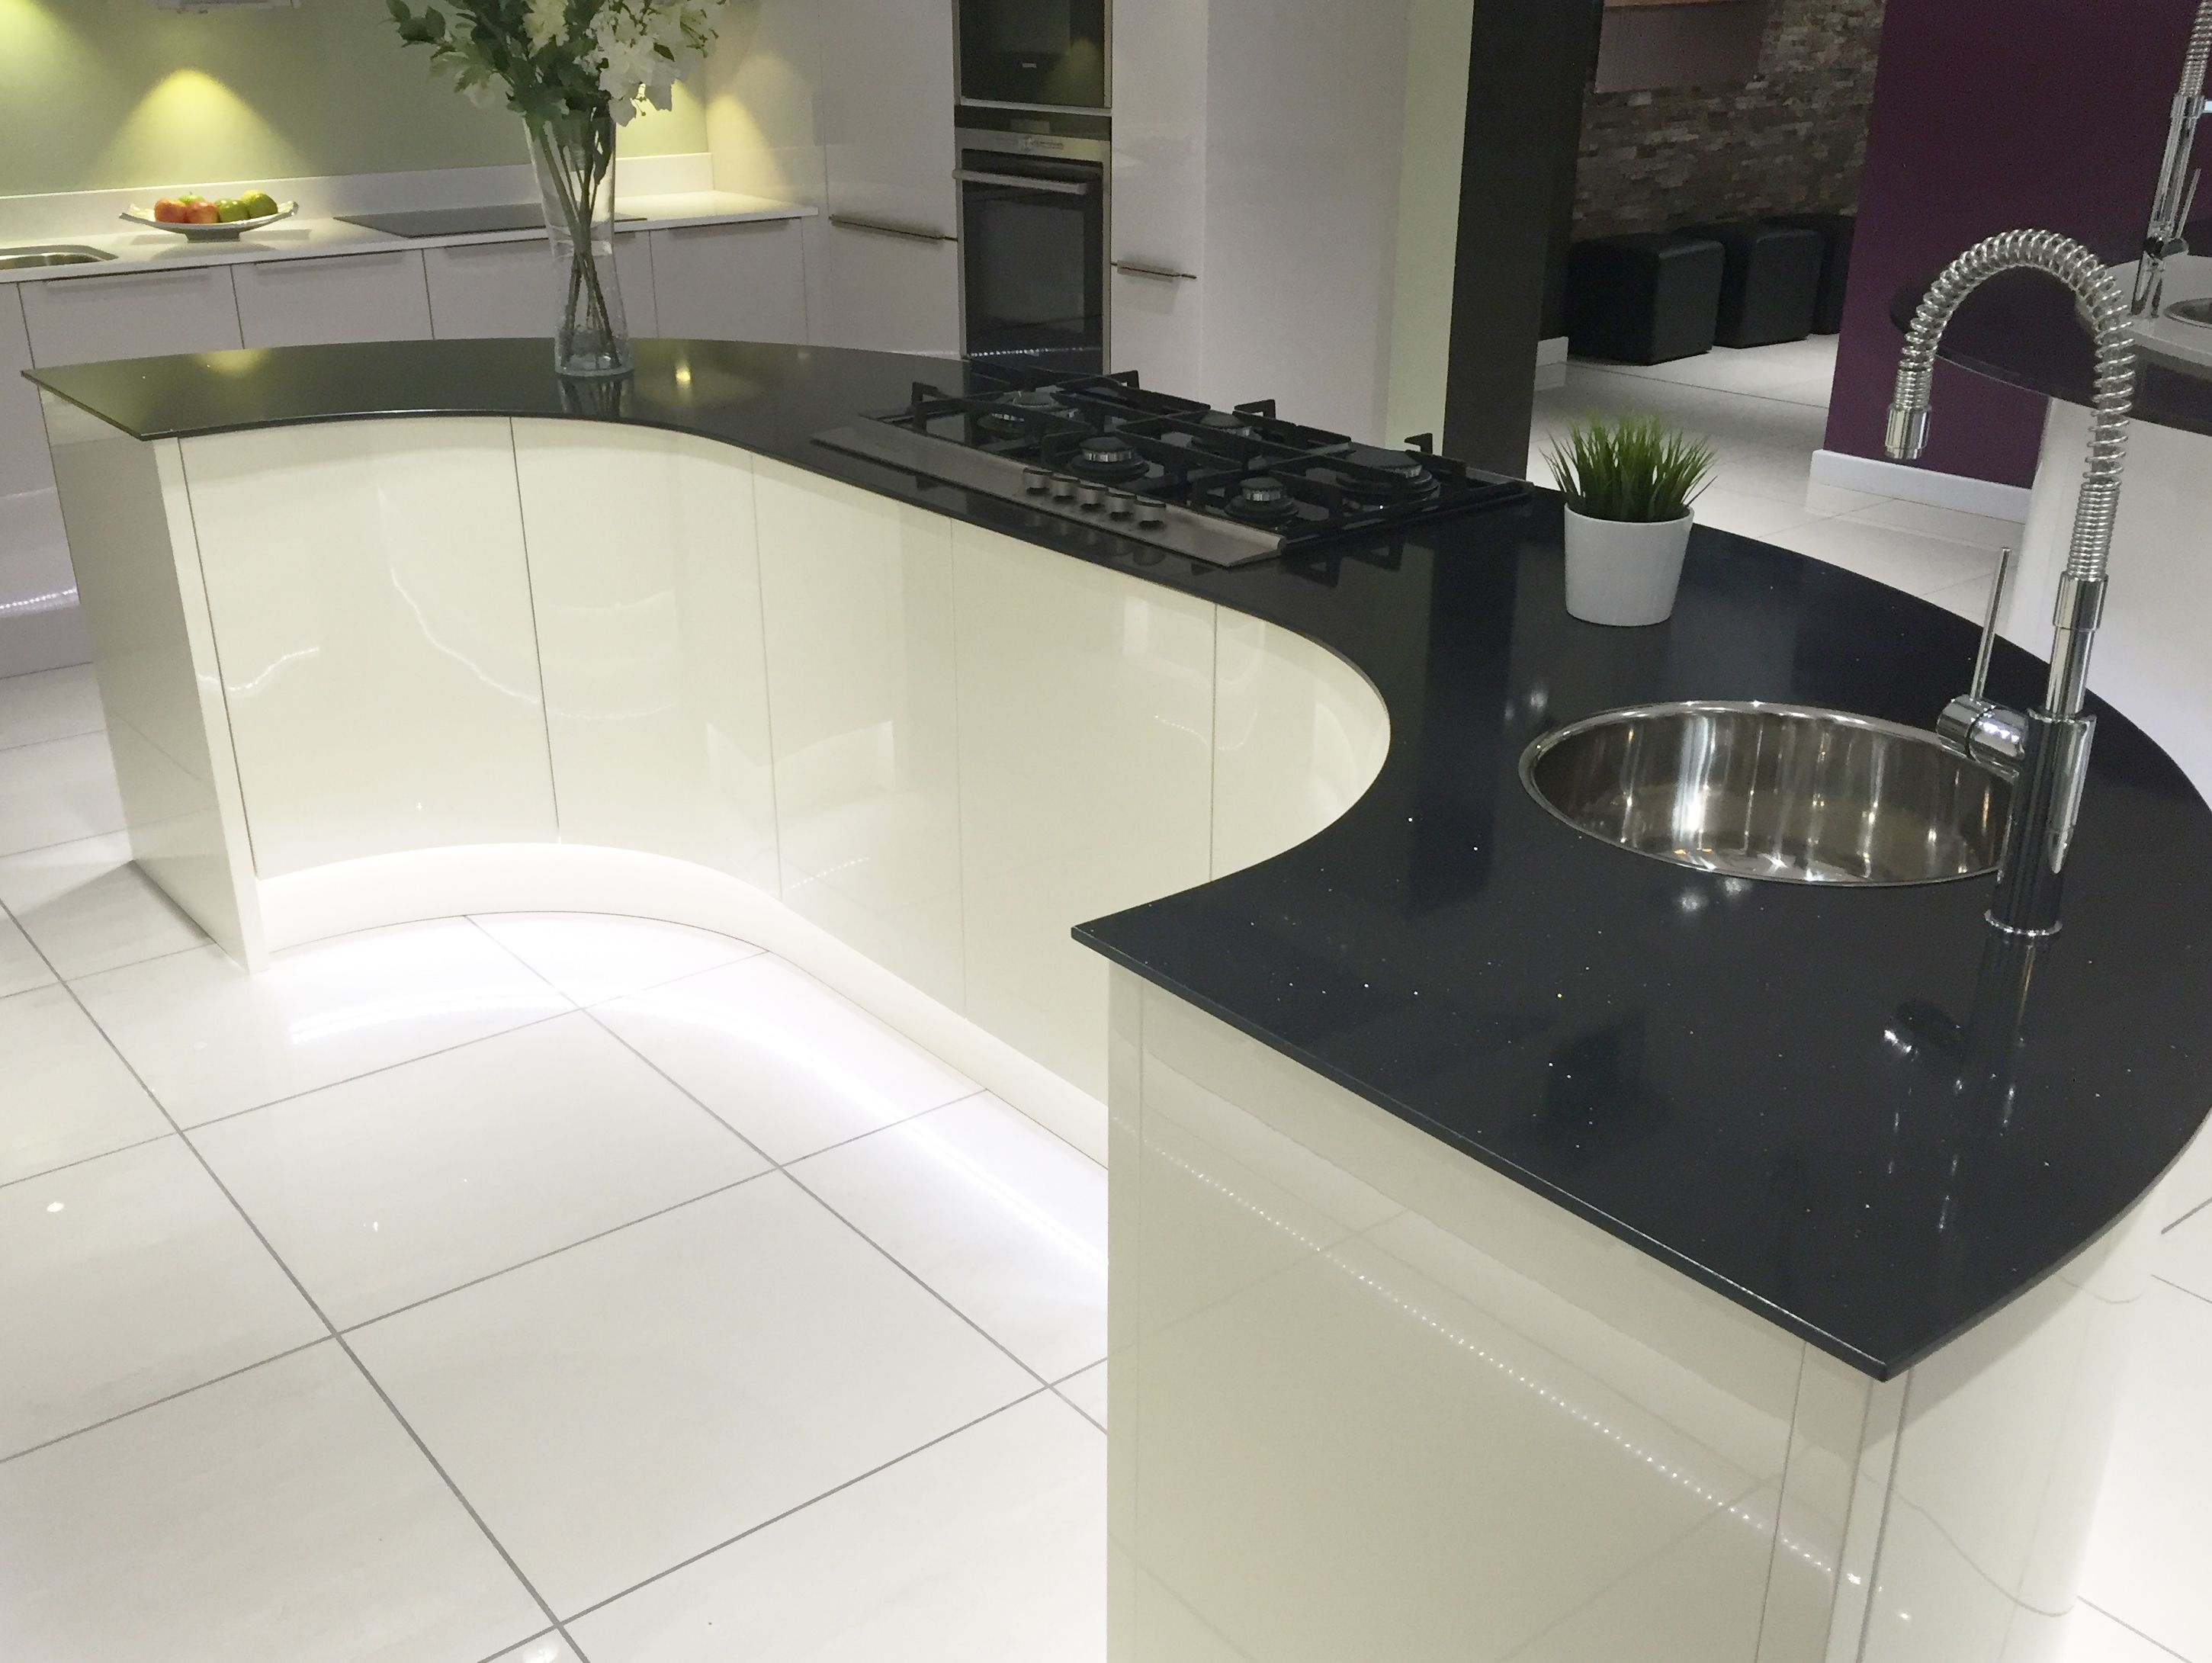 Modern kitchen island design in gloss ivory with large curved units ...